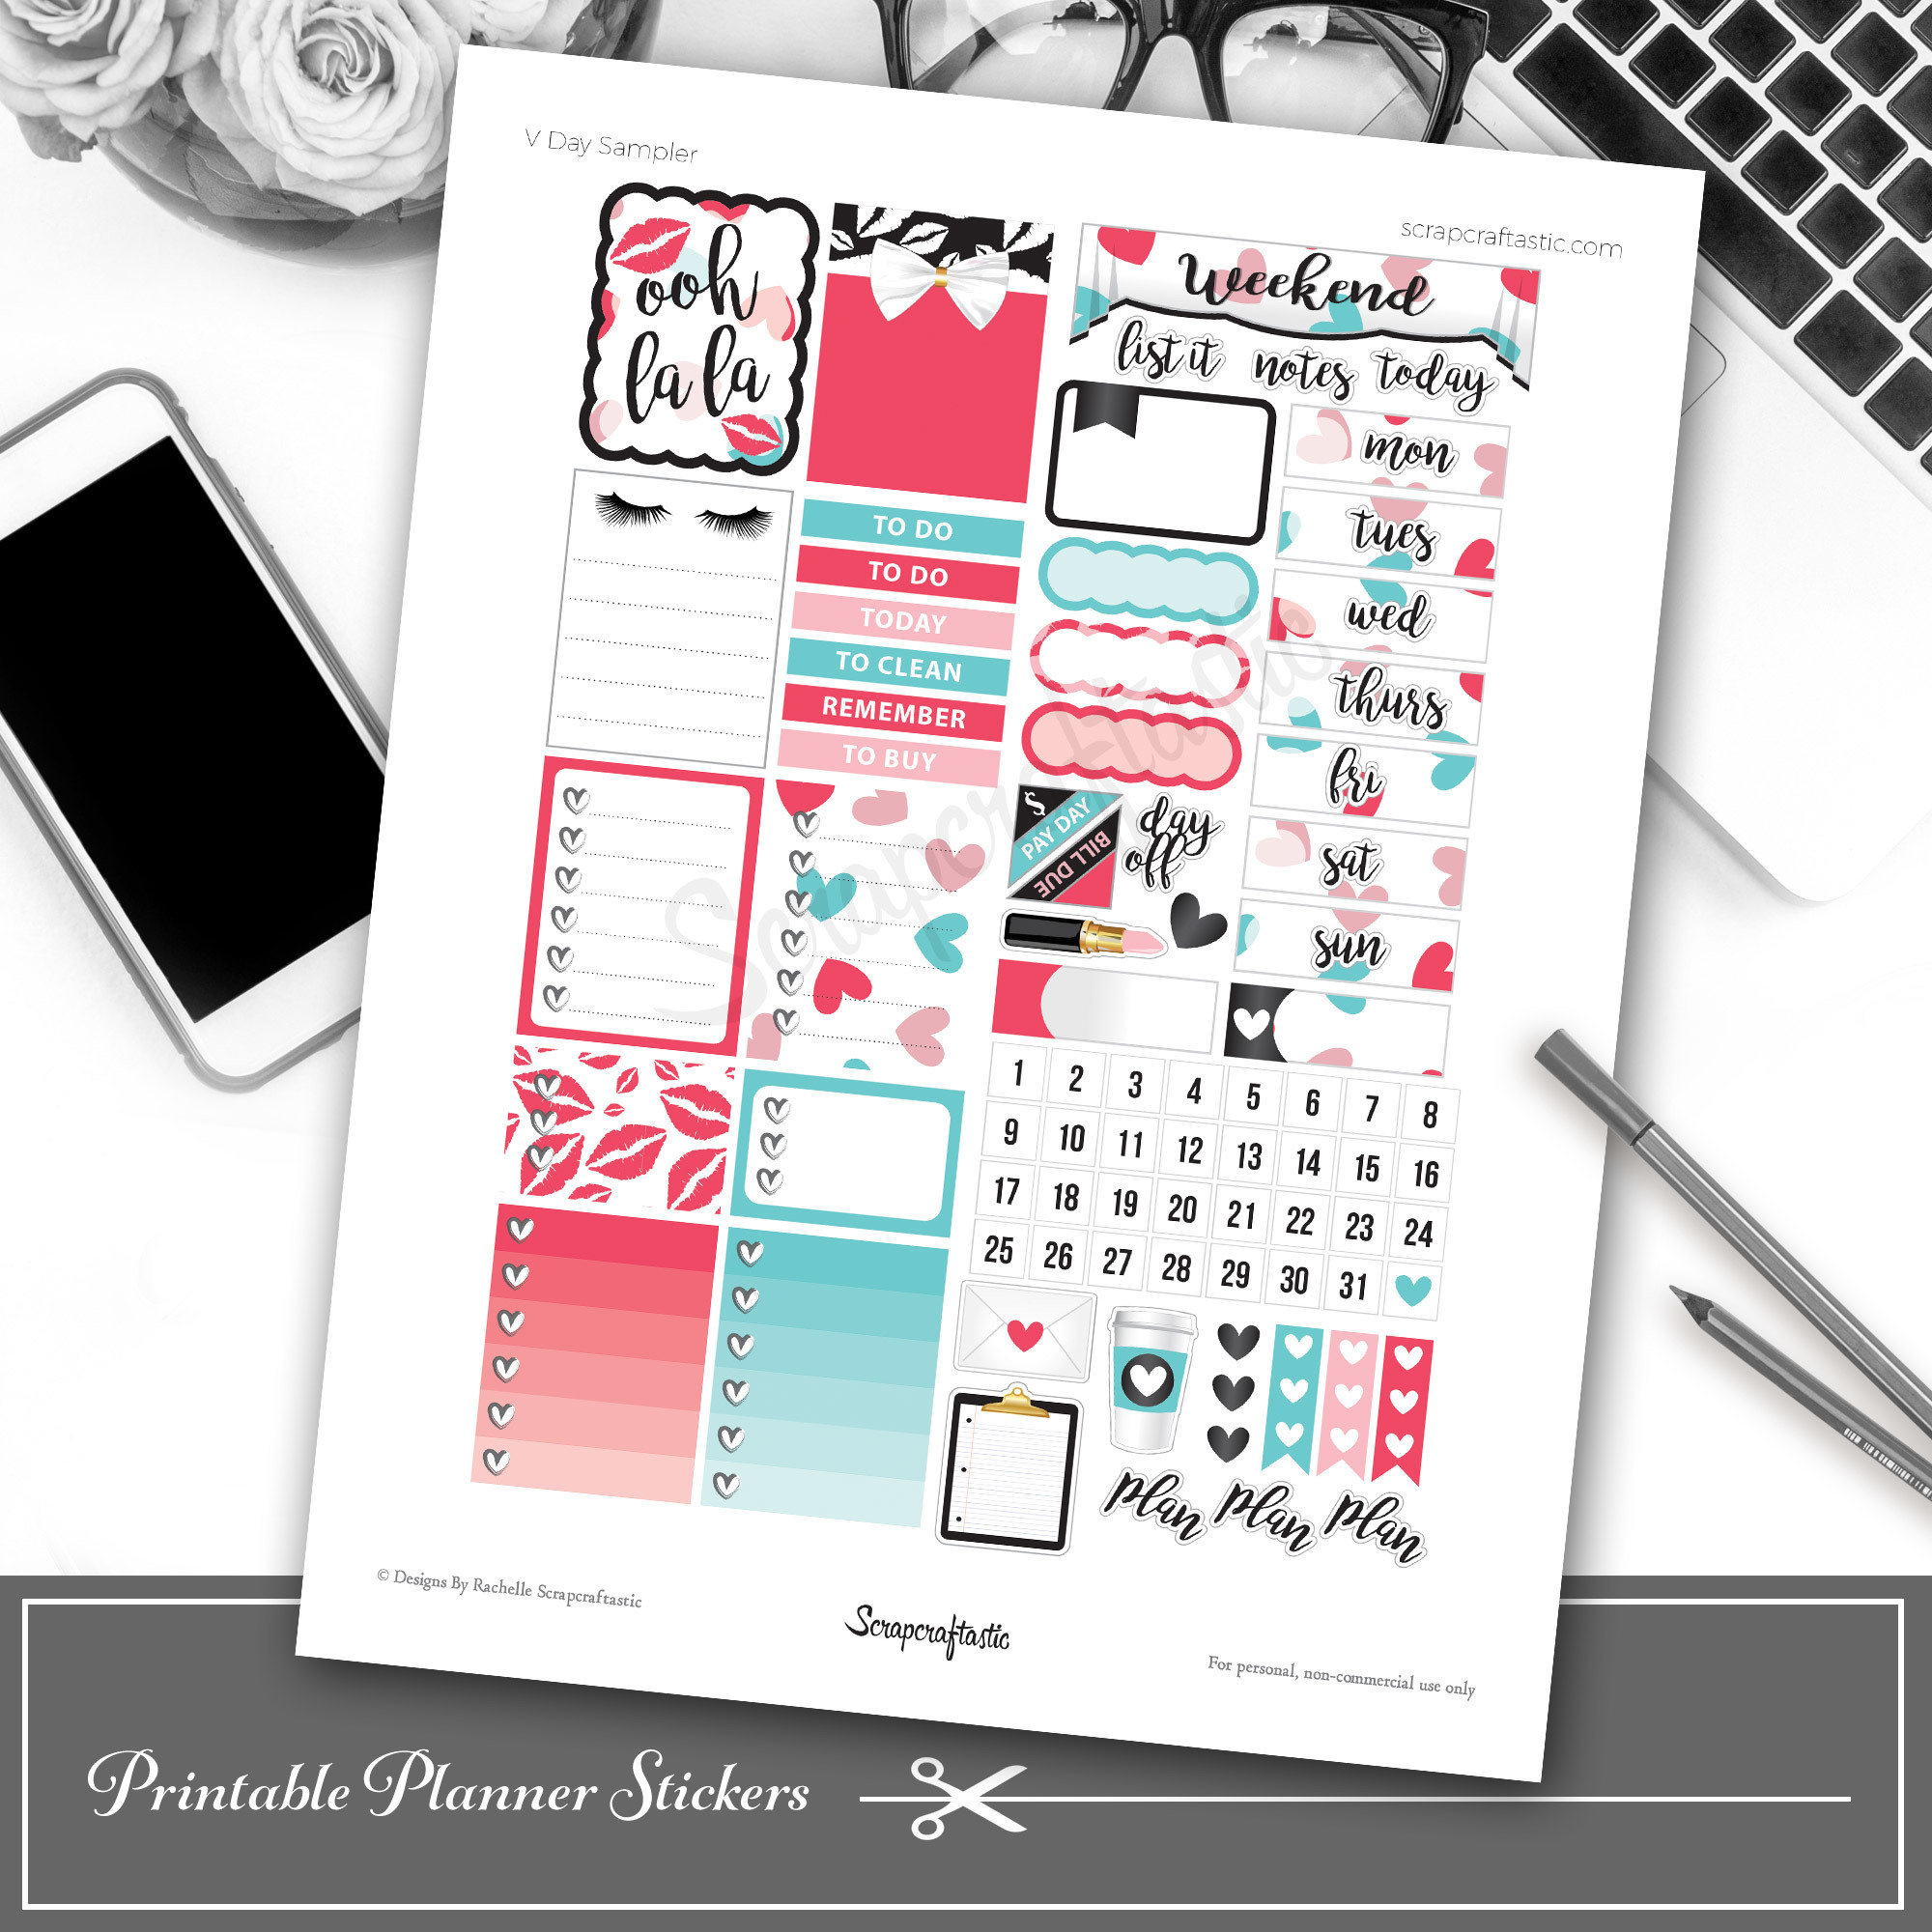 V Day Printable Planner Stickers 04166